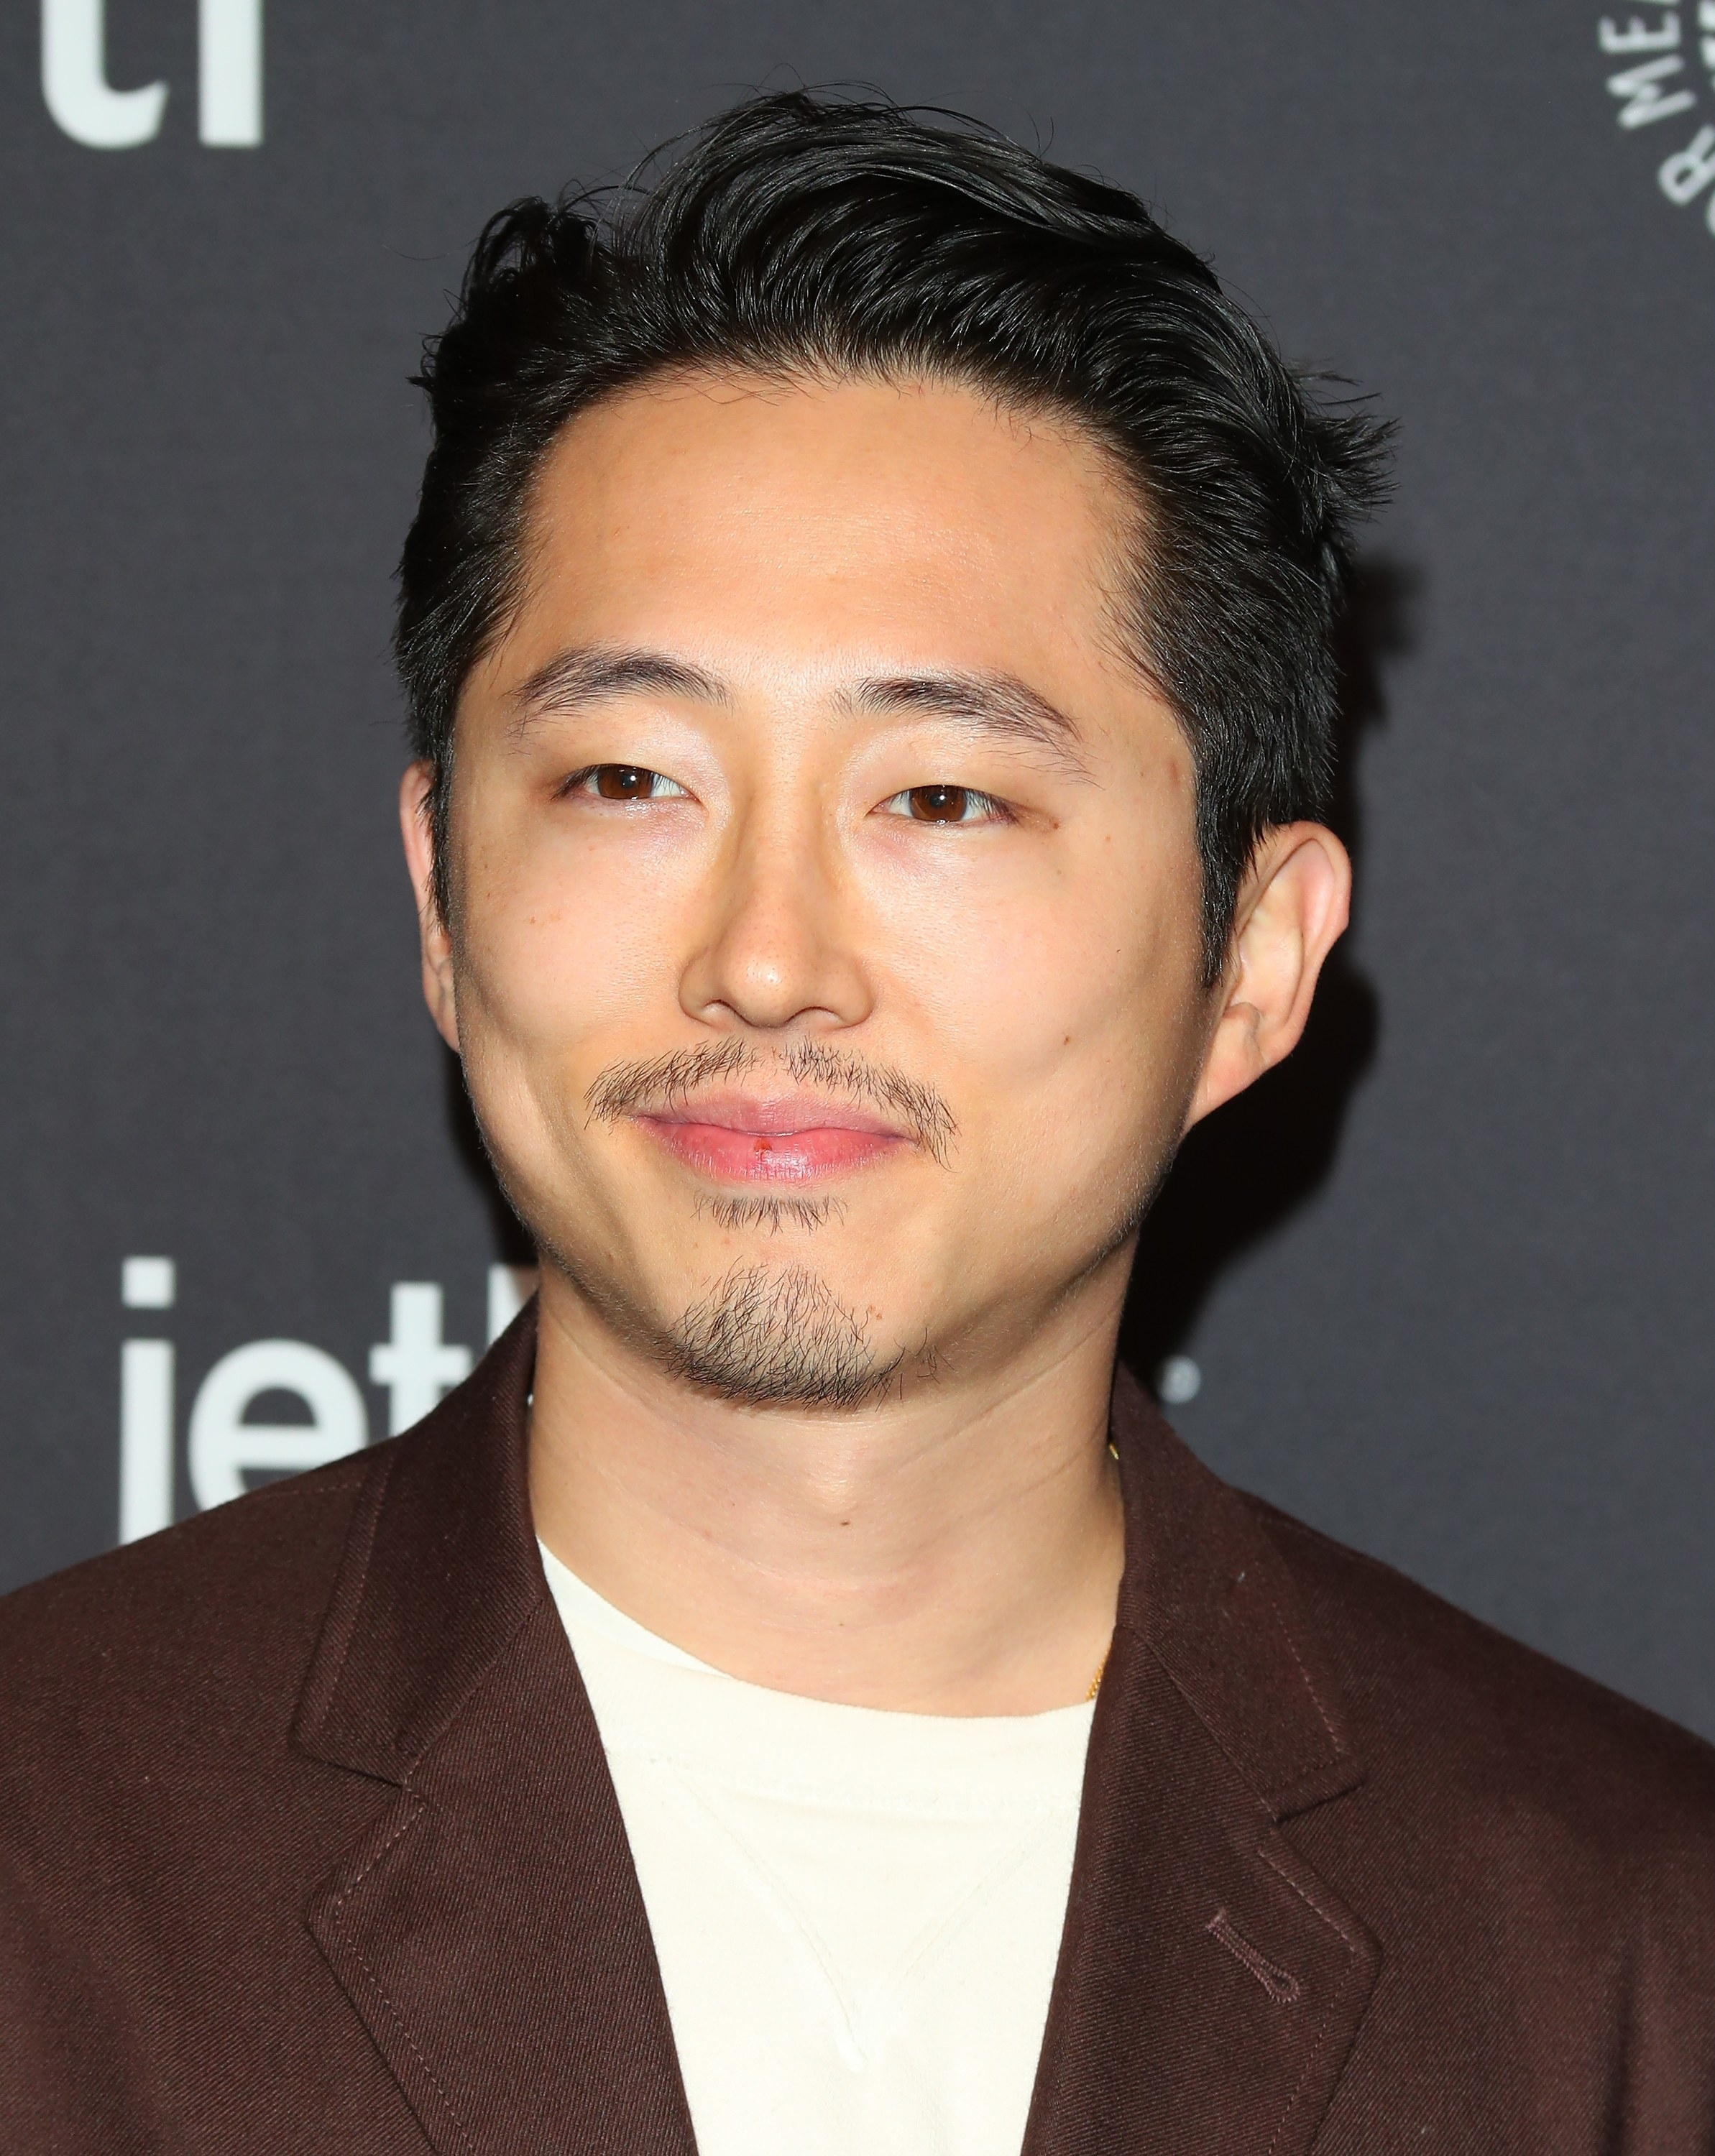 Steven Yeun on the Red Carpet